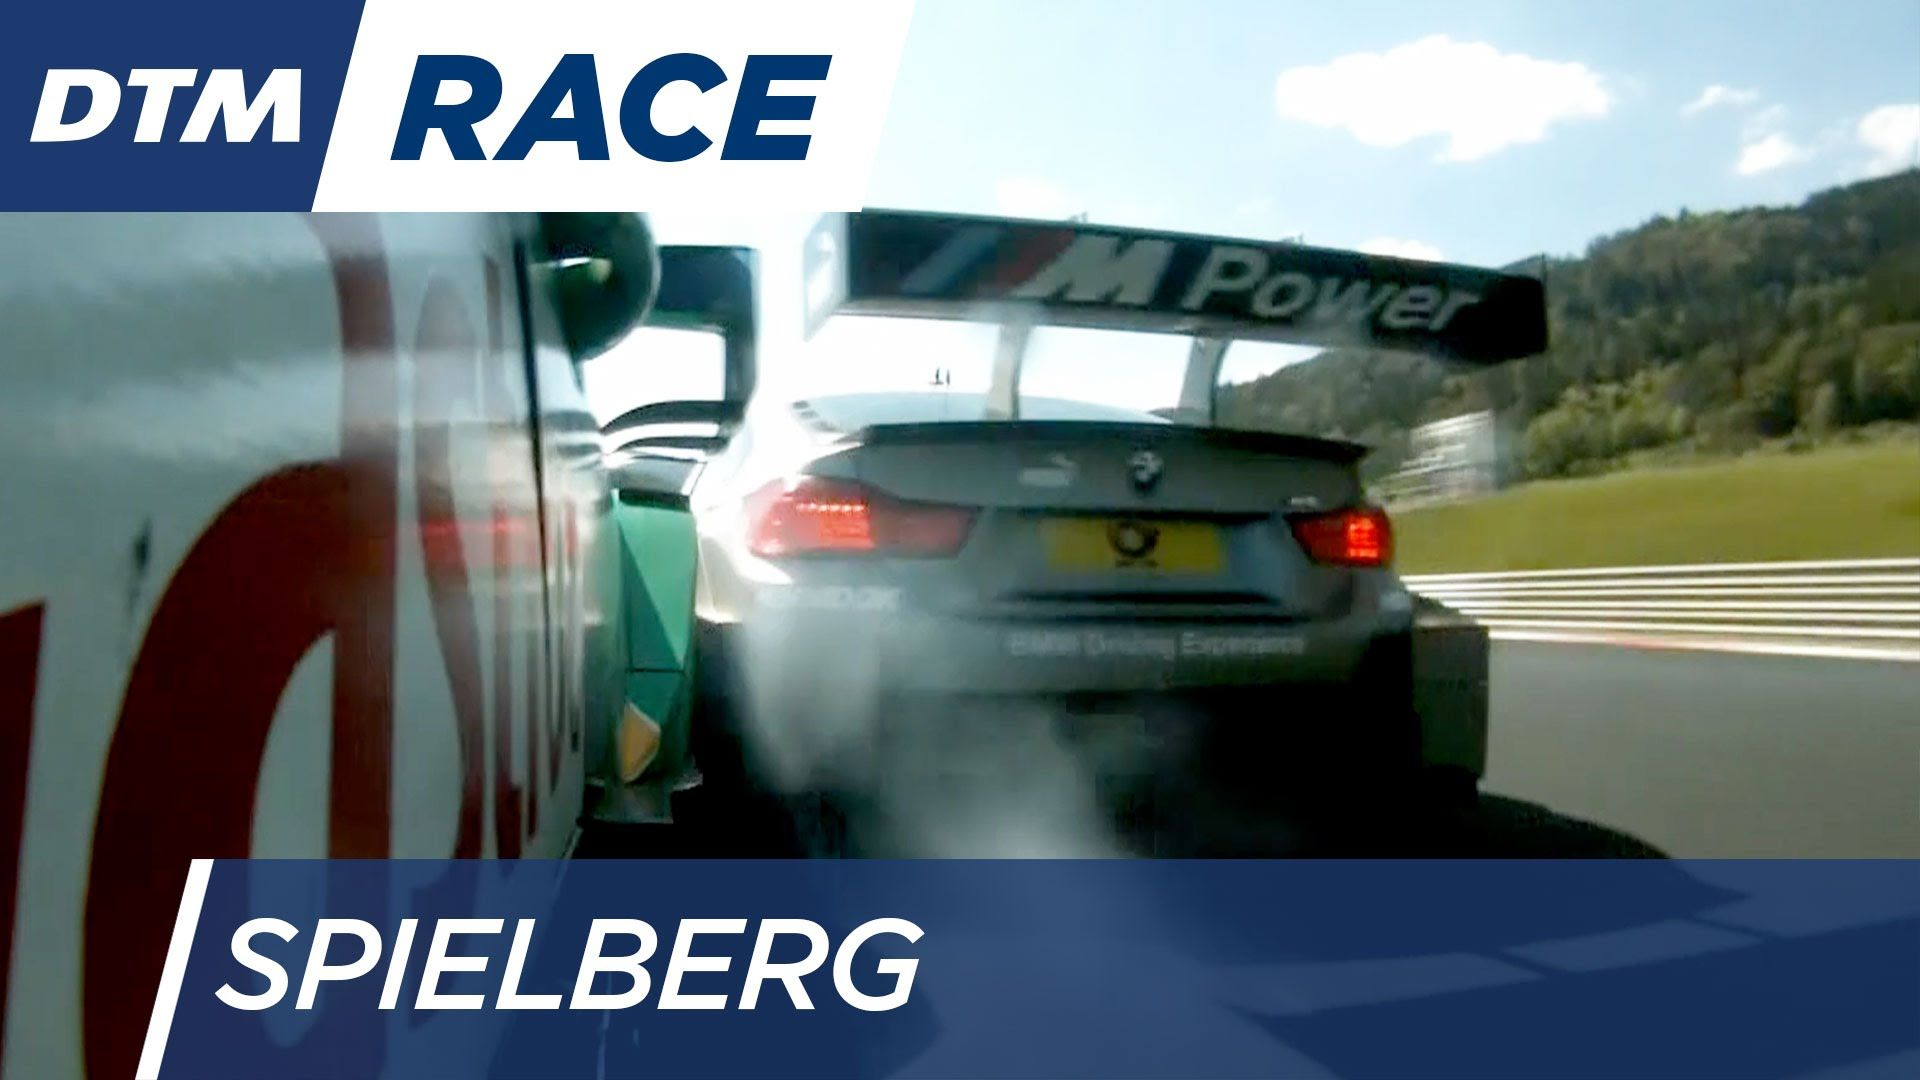 Touch & Off: Da Costa vs Mortara - DTM Spielberg 2016 //After a little touch Antonio Felix Da Costa crashes with Edoardo Mortara and both go to the gravel.  Subscribe to our YouTube channel (http://bit.do/subscribeDTM) and follow us on our social media platforms:  Homepage: http://www.dtm.com Facebook: http://facebook.com/DTM Twitter: http://twitter.com/DTM Instagram: http://instagram.com/dtm_pics